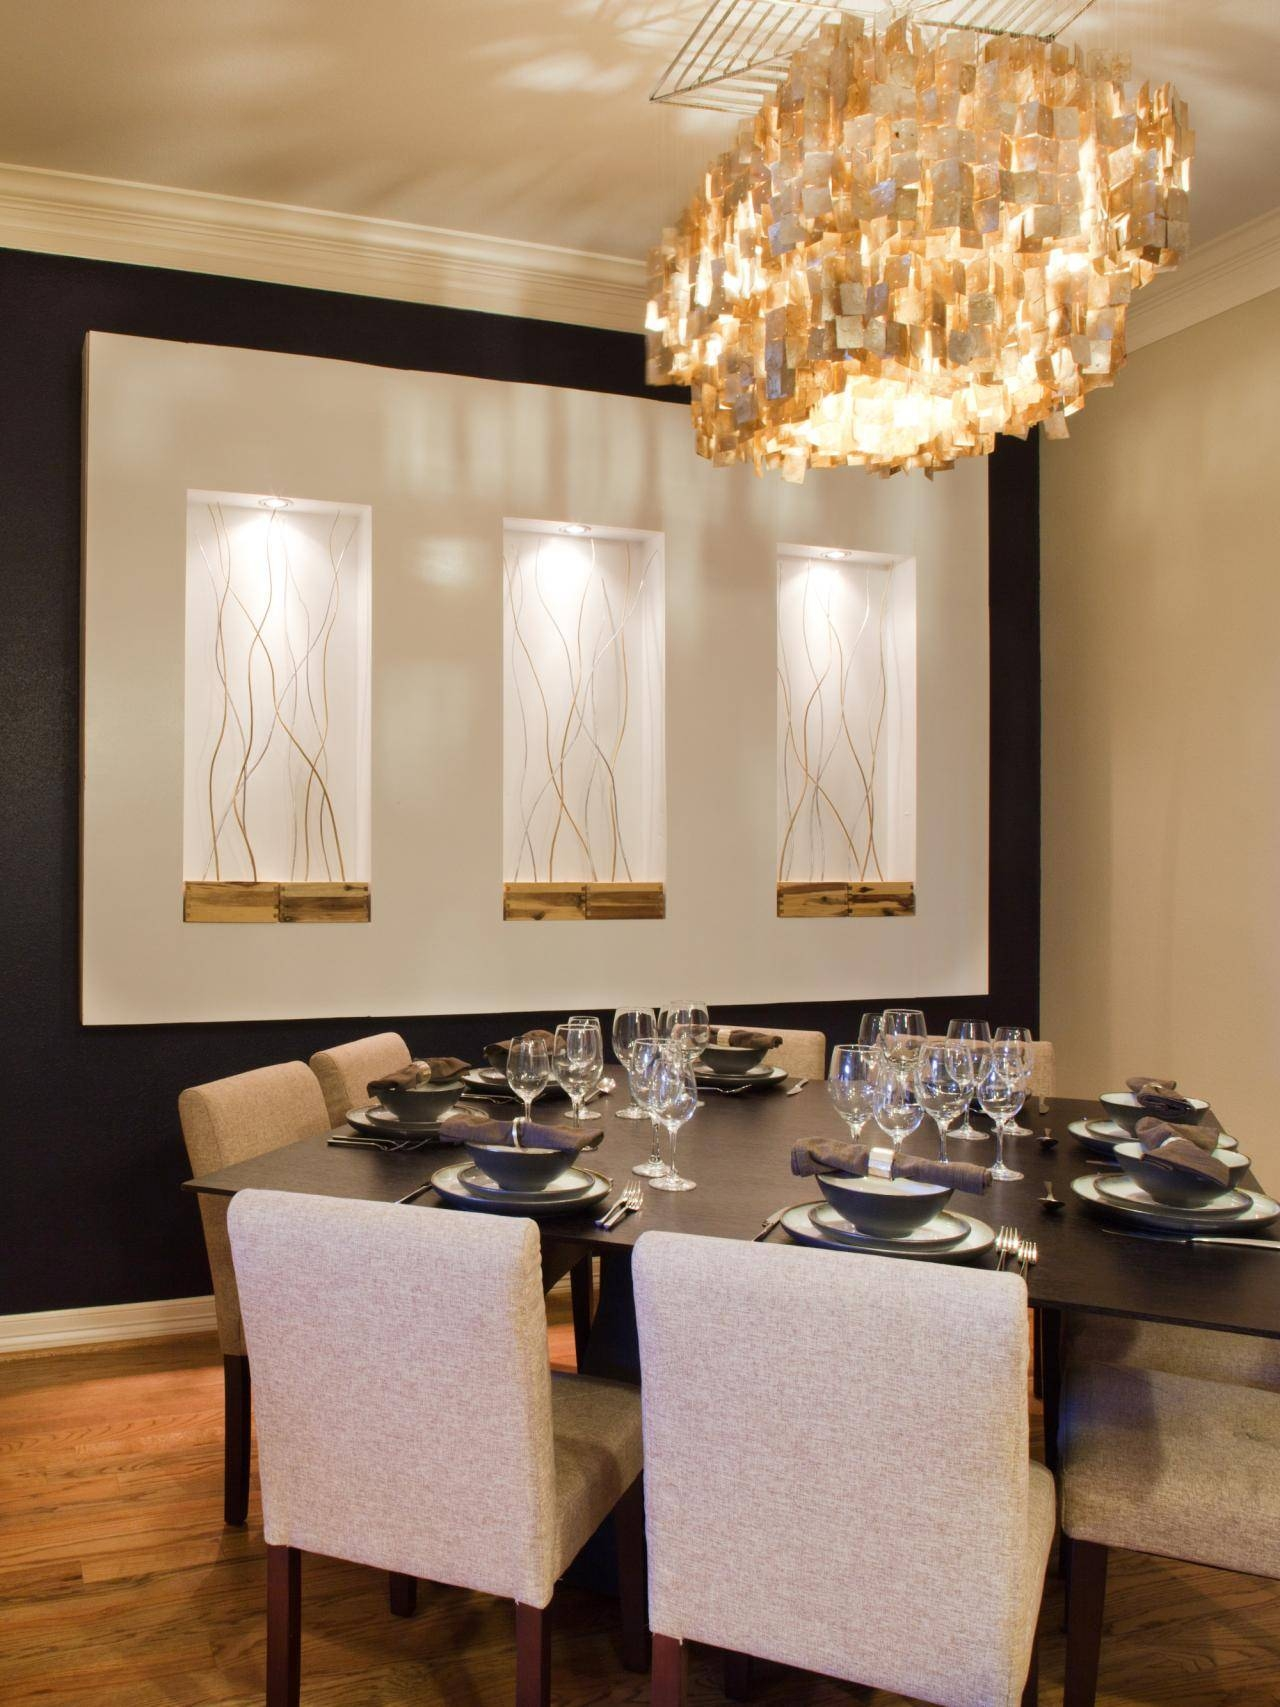 Modern Wall Art For Dining Room – Alliancemv Within Latest Dining Area Wall Art (View 17 of 20)